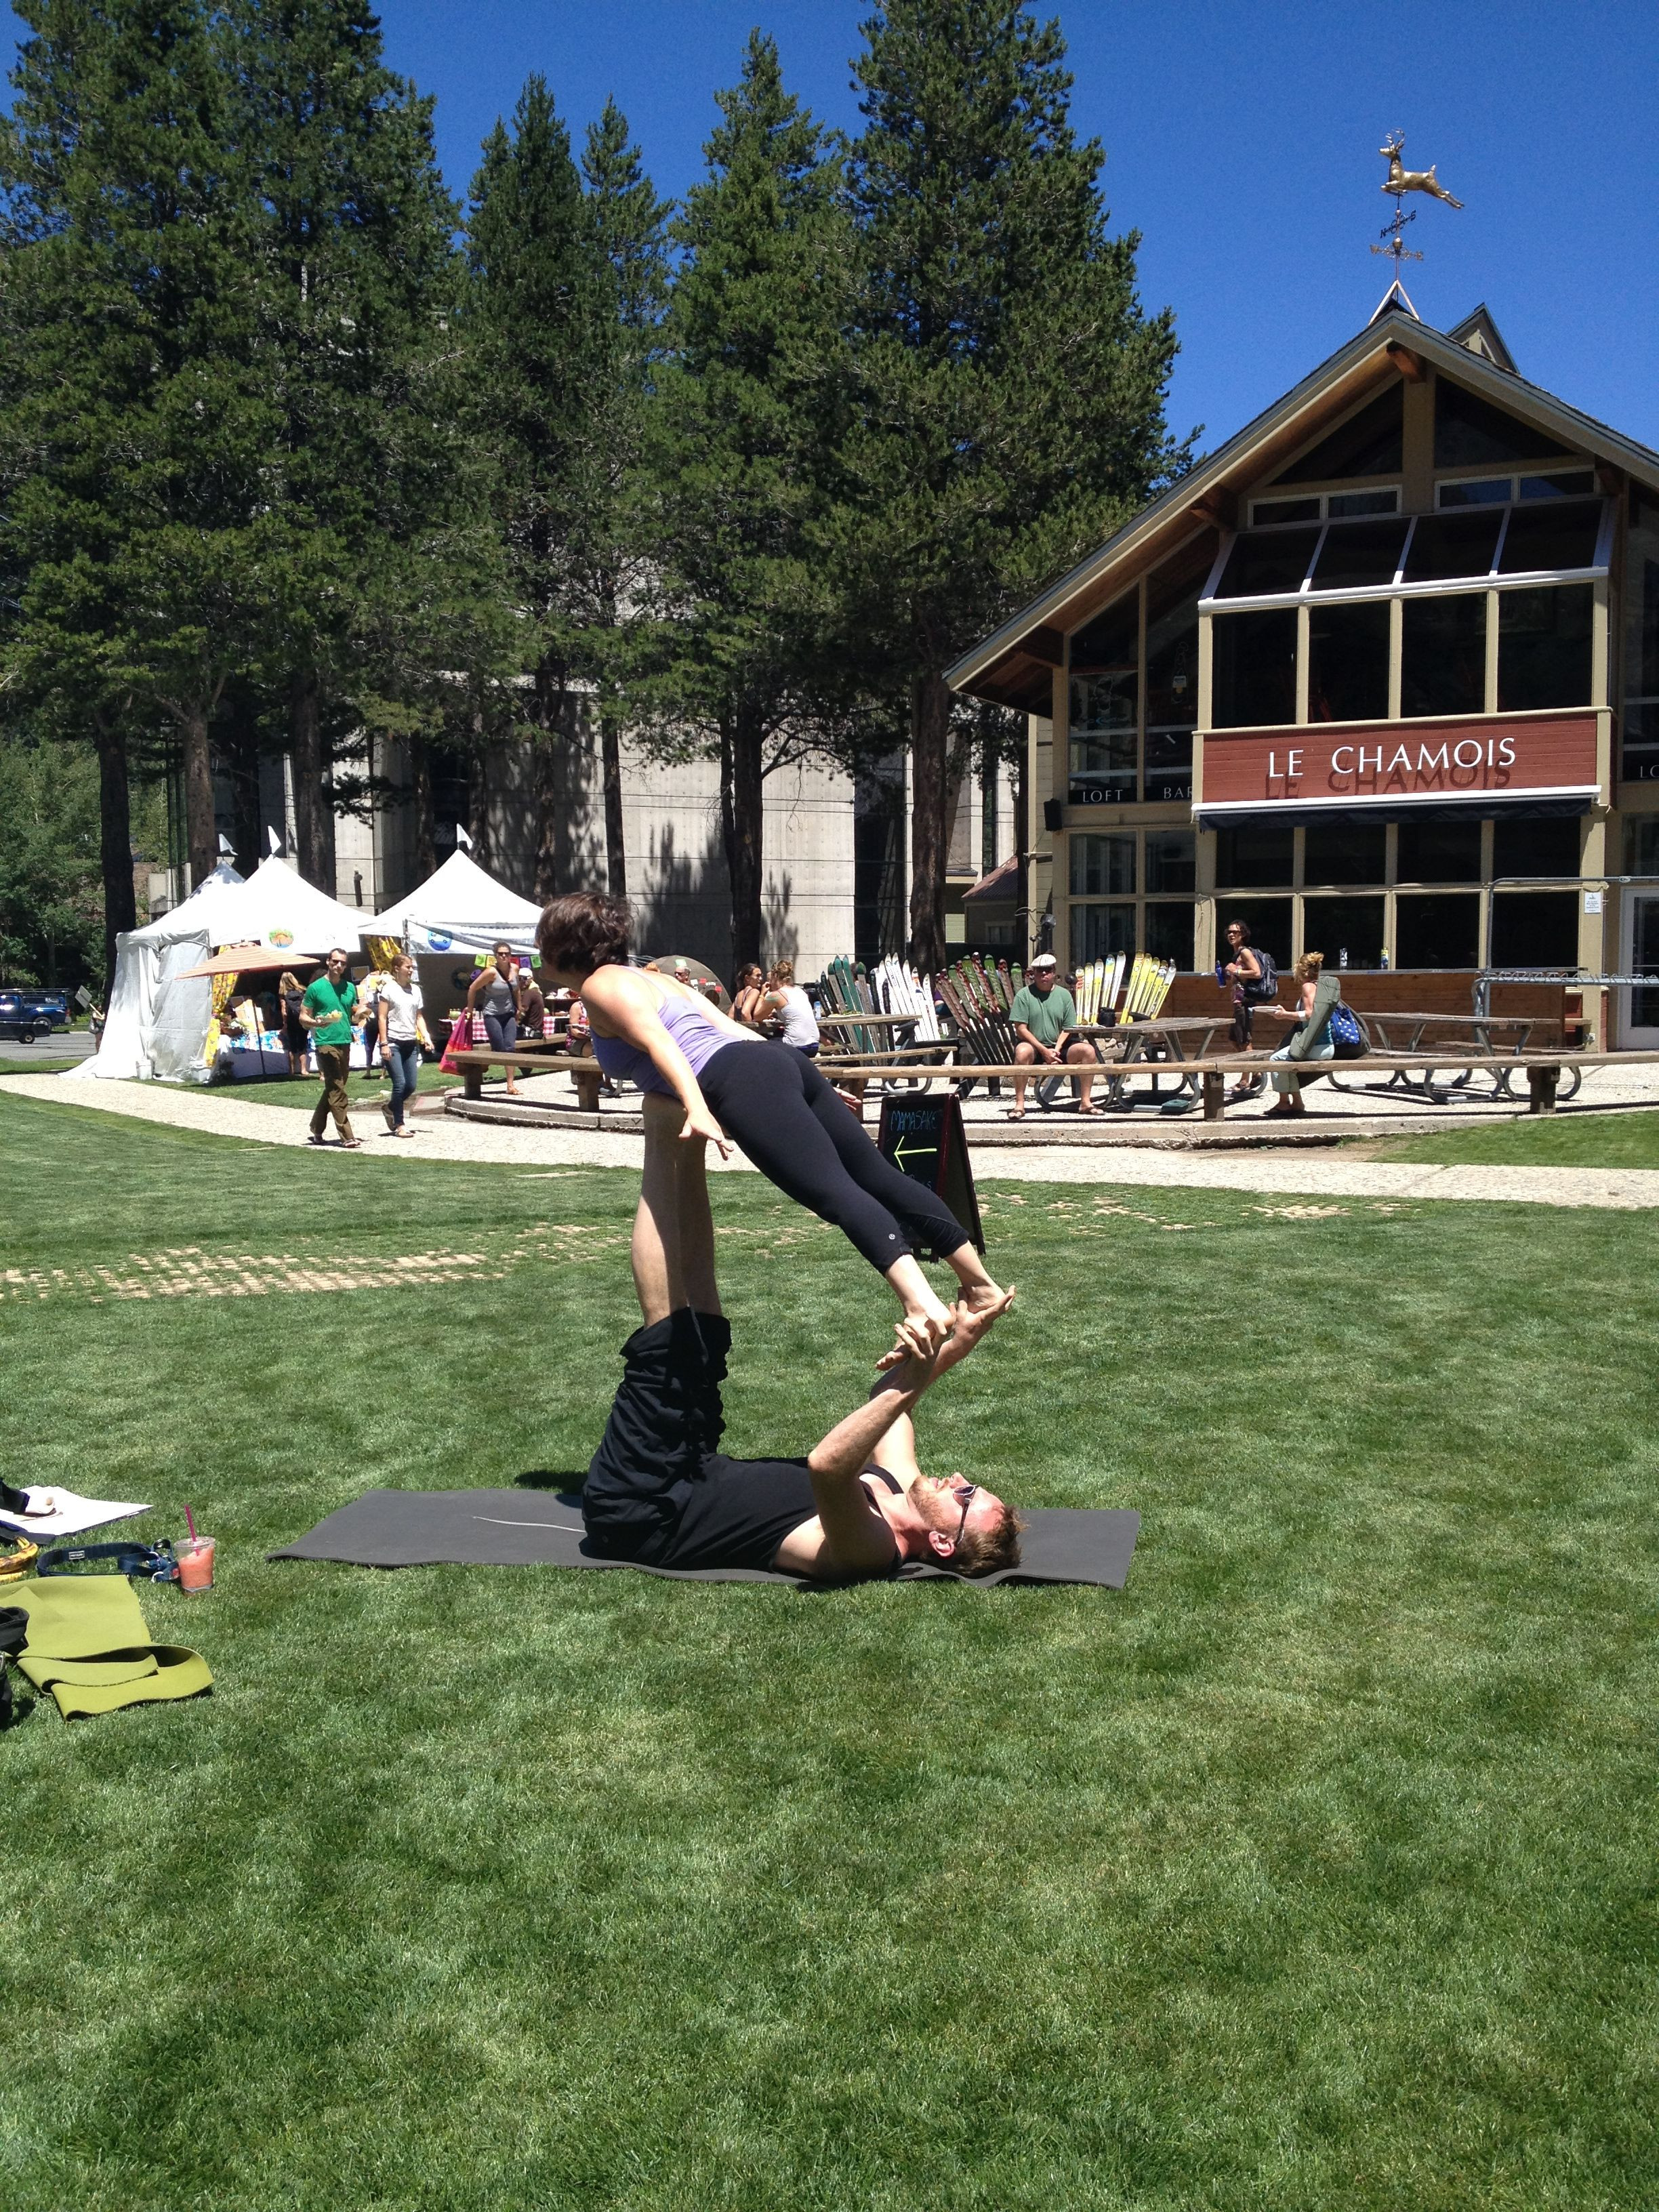 These guys were awesome! Check out AcroYoga for details. http://www.acroyoga.org/